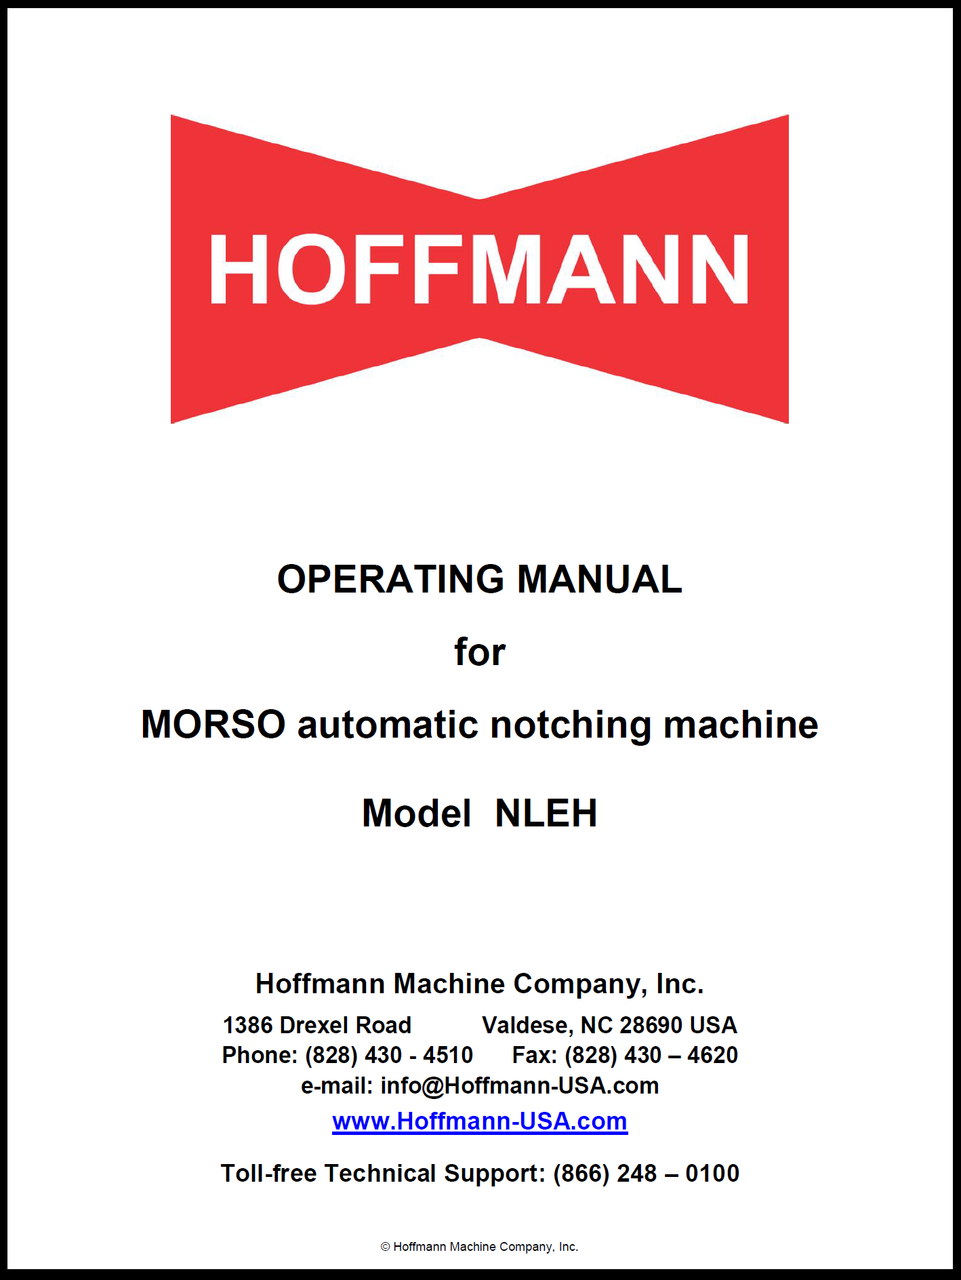 Operating Manual for Morso NLEH